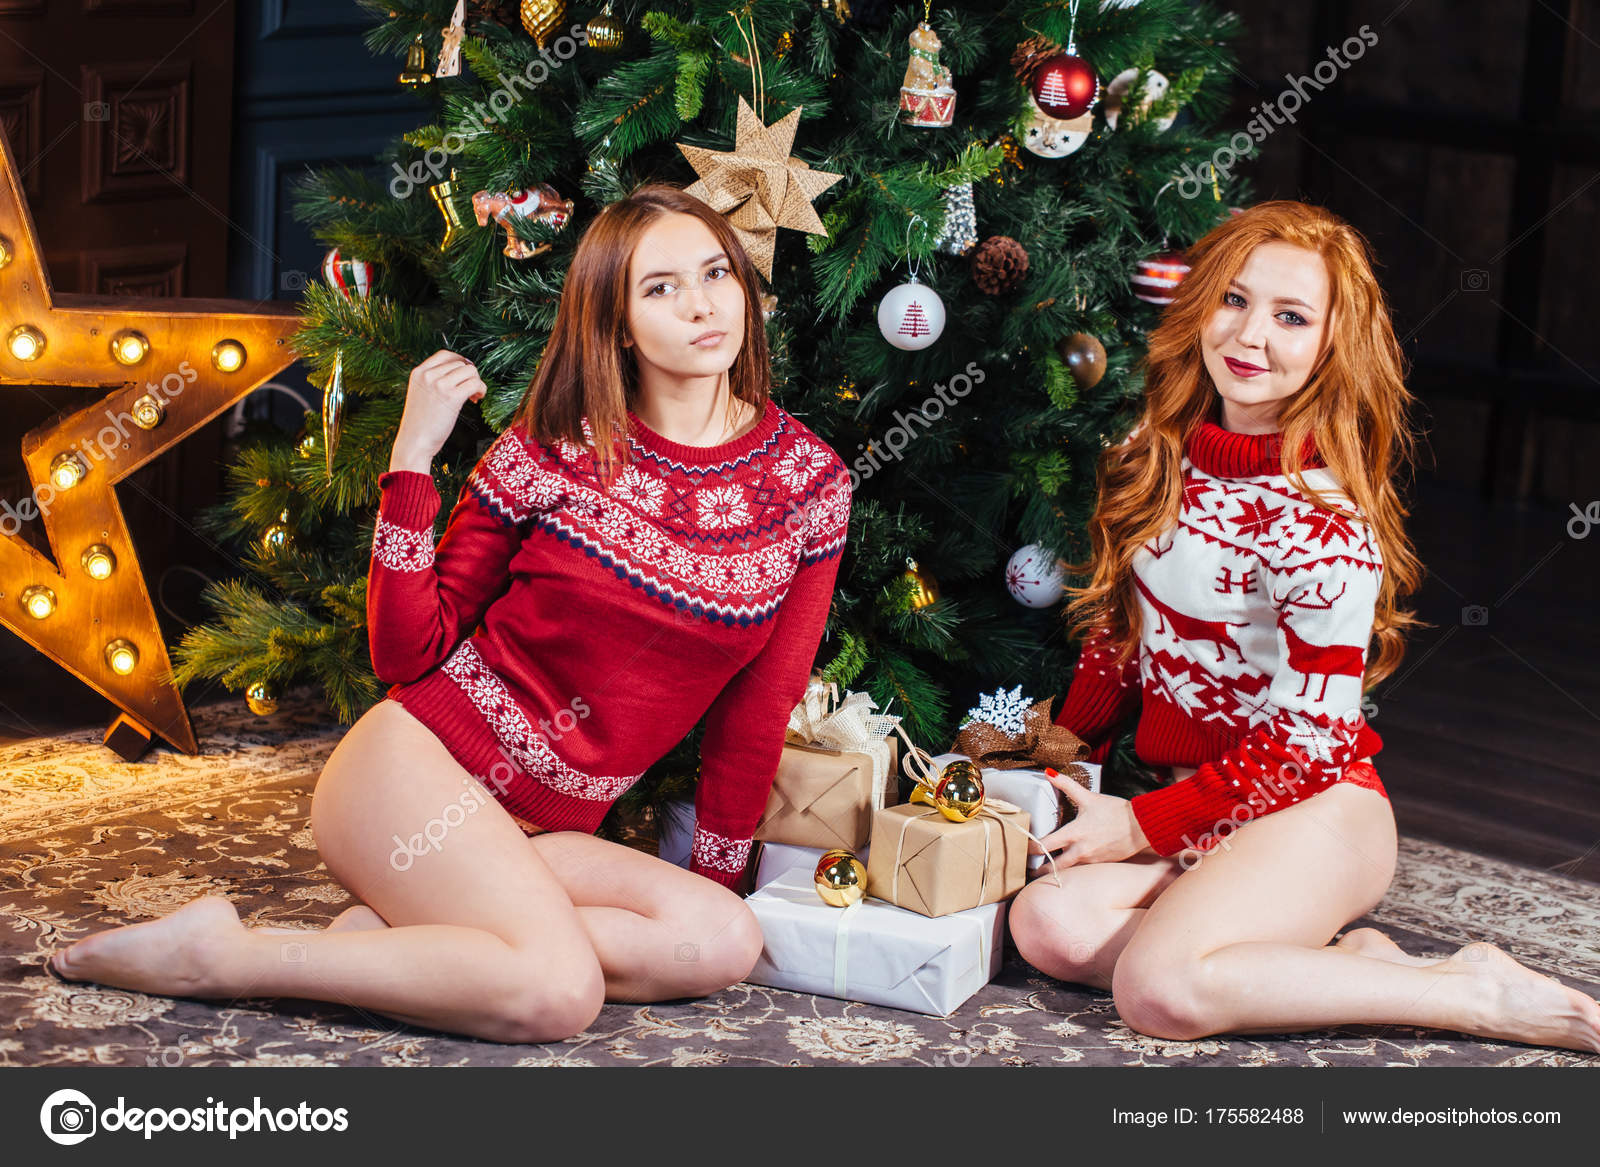 Are absolutely cute girl panties and sweater